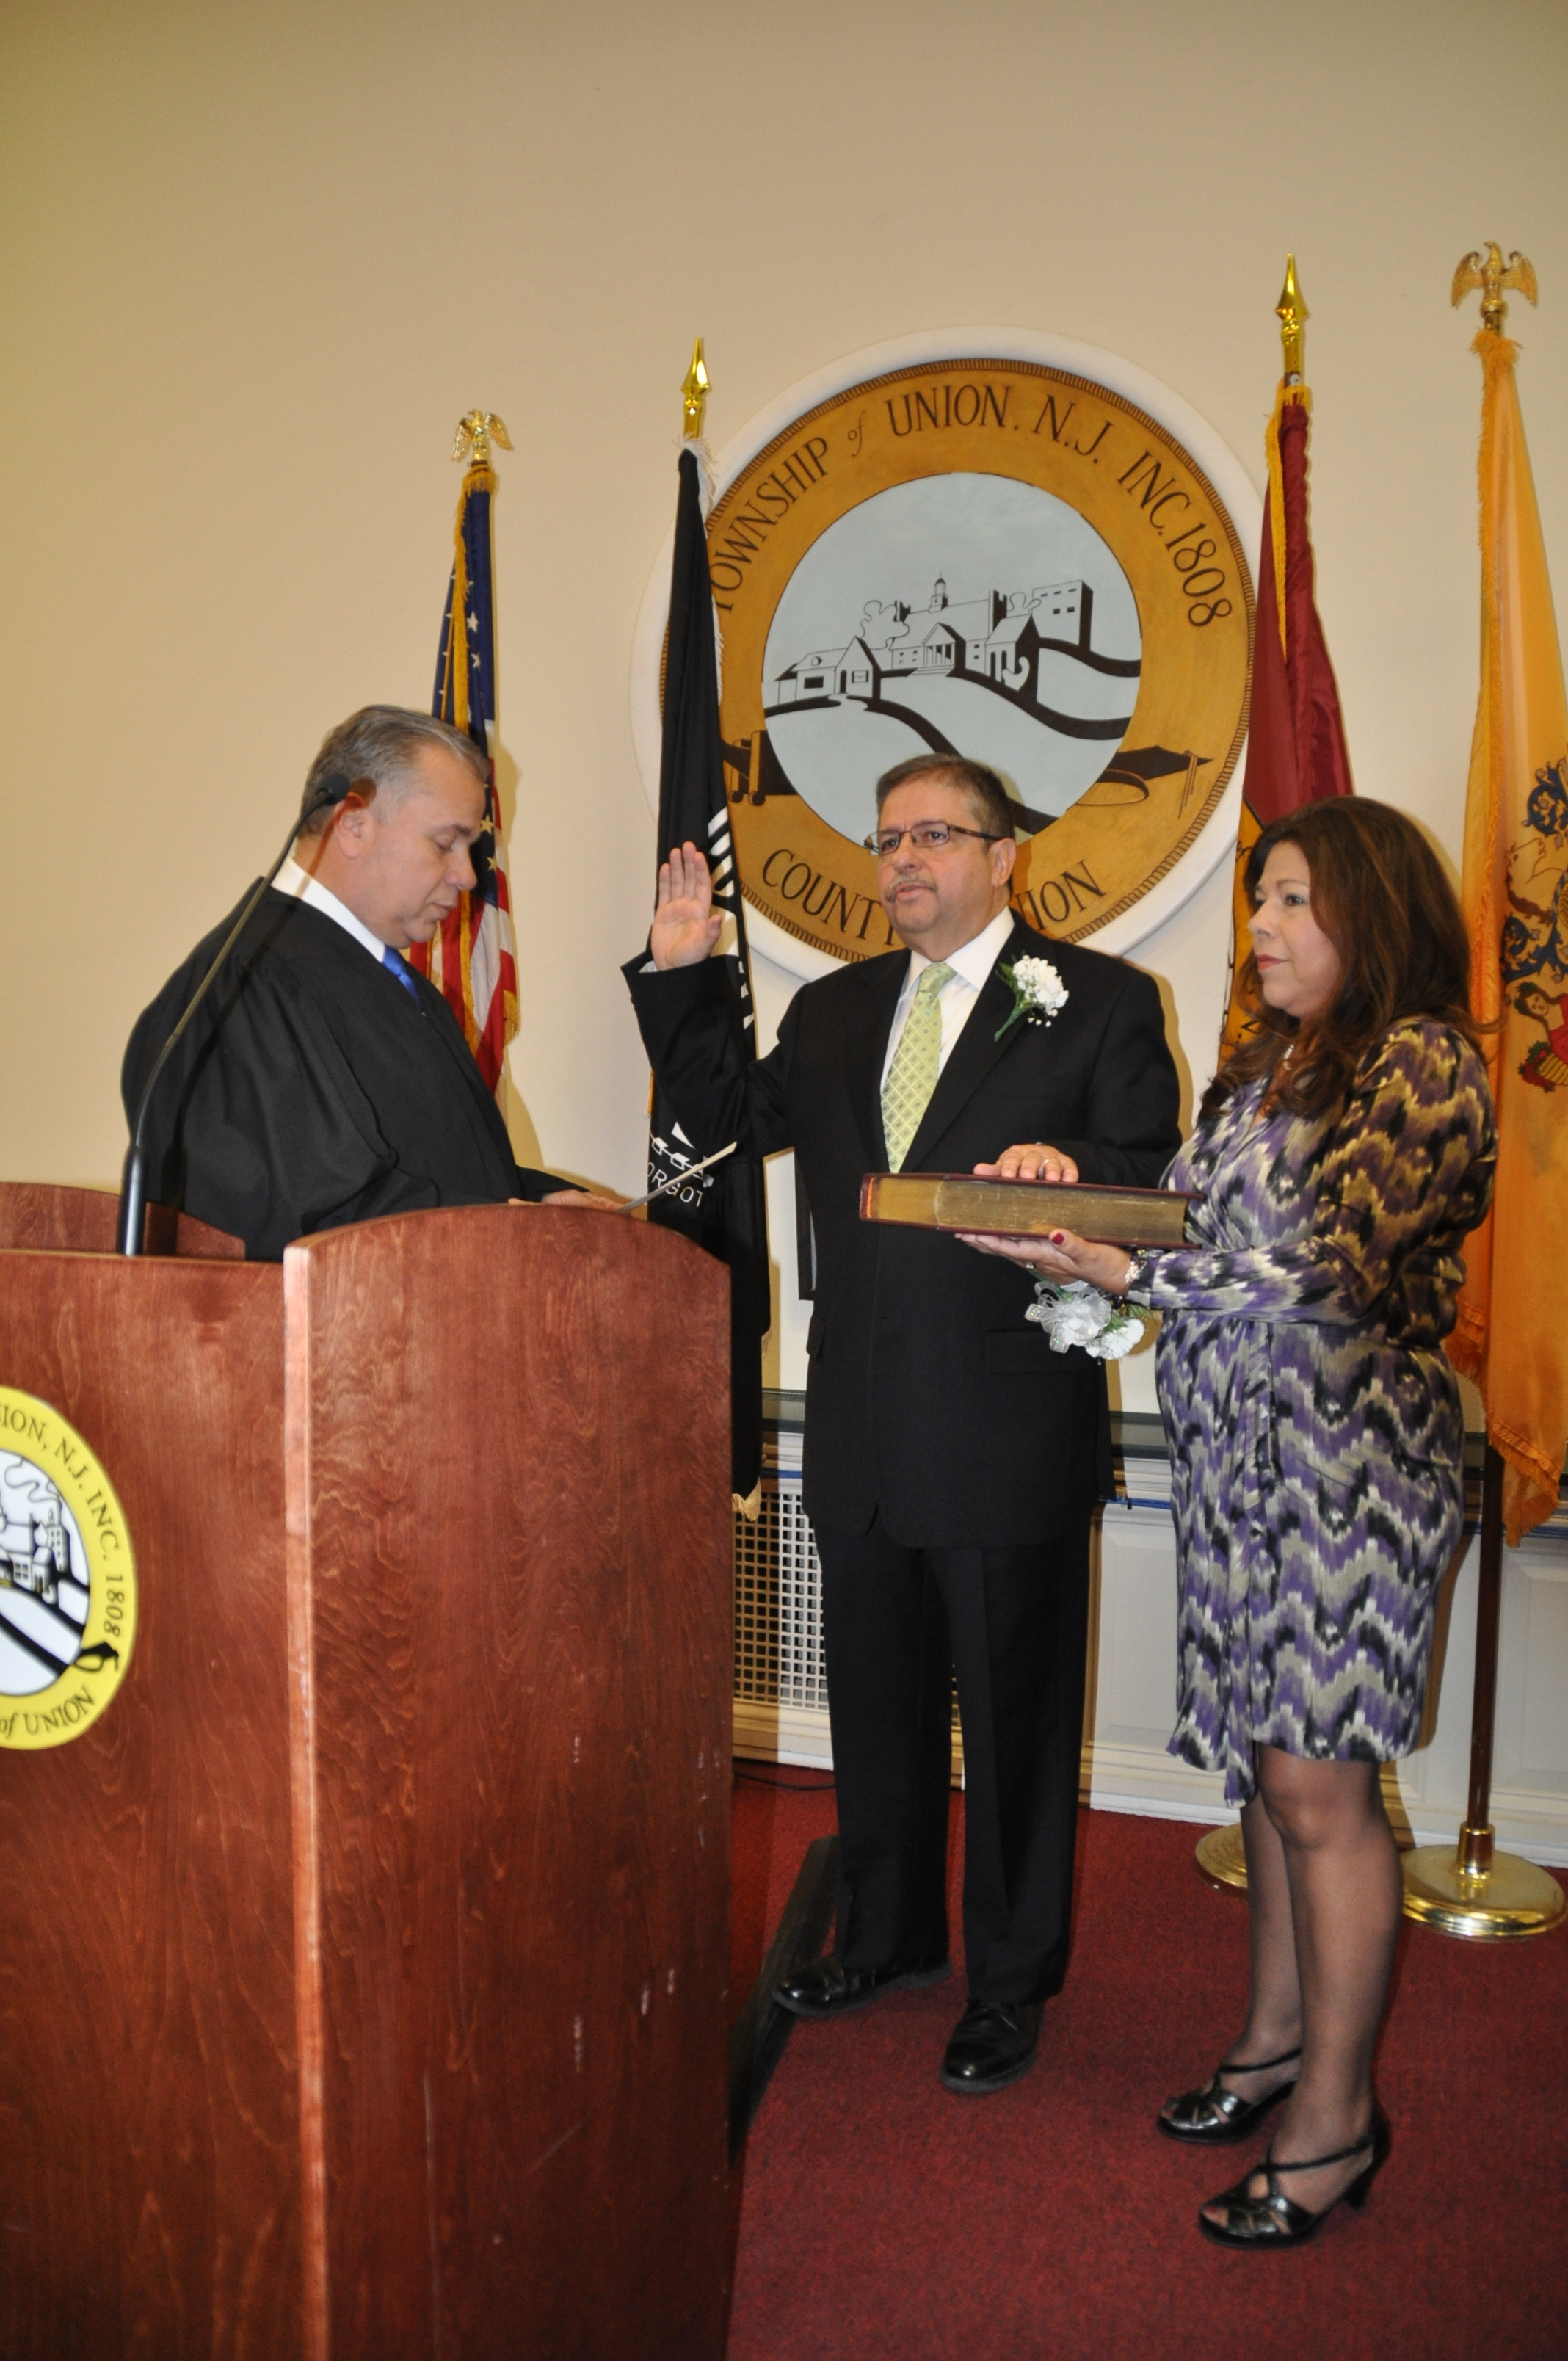 bc415b70d3ae45139205_mayor_manuel_figueiredo_swearing_in_1-1-16.jpg